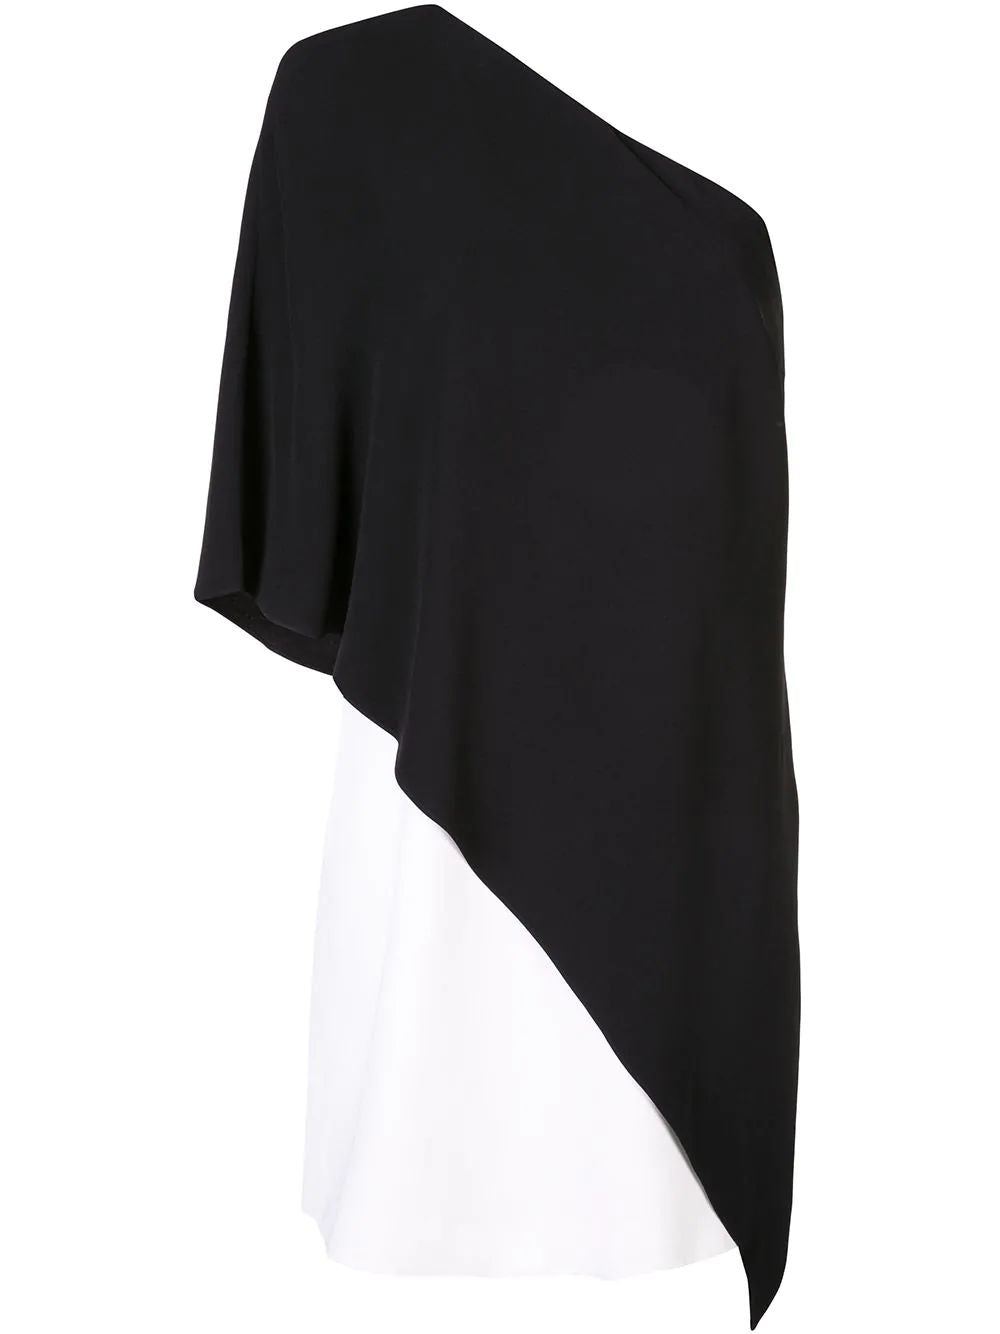 Black & White One Shoulder Shift Dress